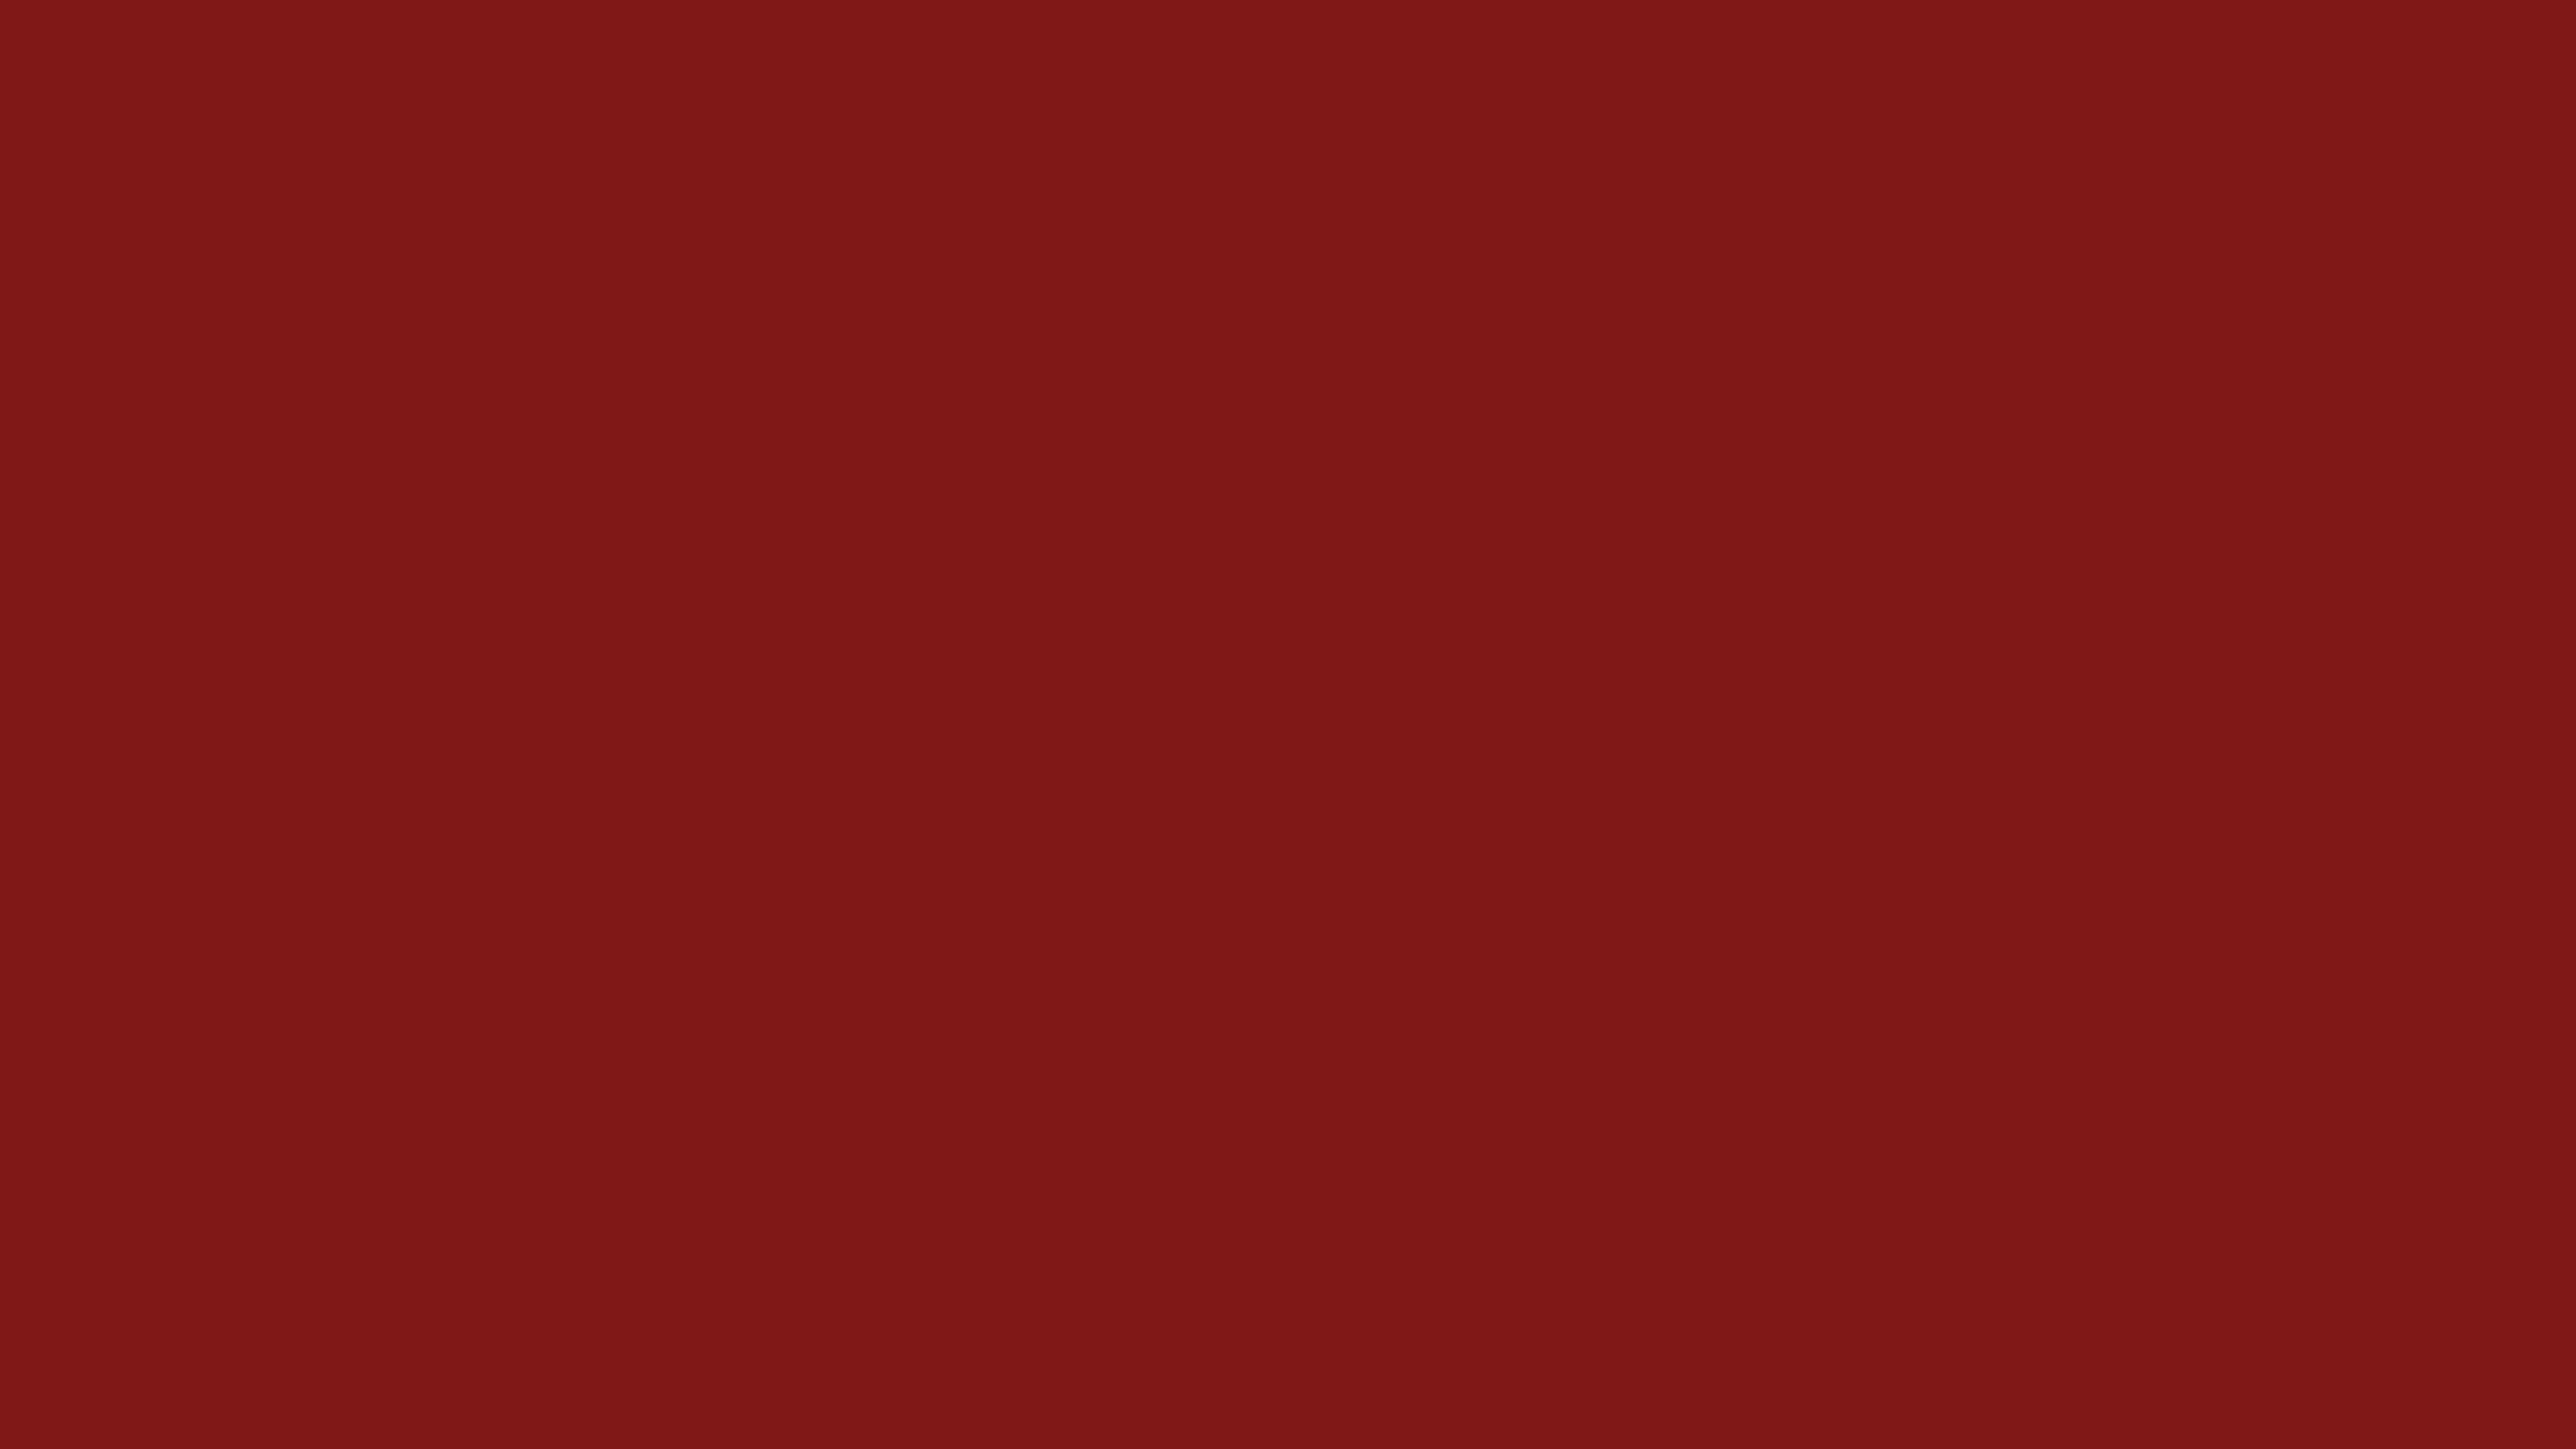 5120x2880 Falu Red Solid Color Background